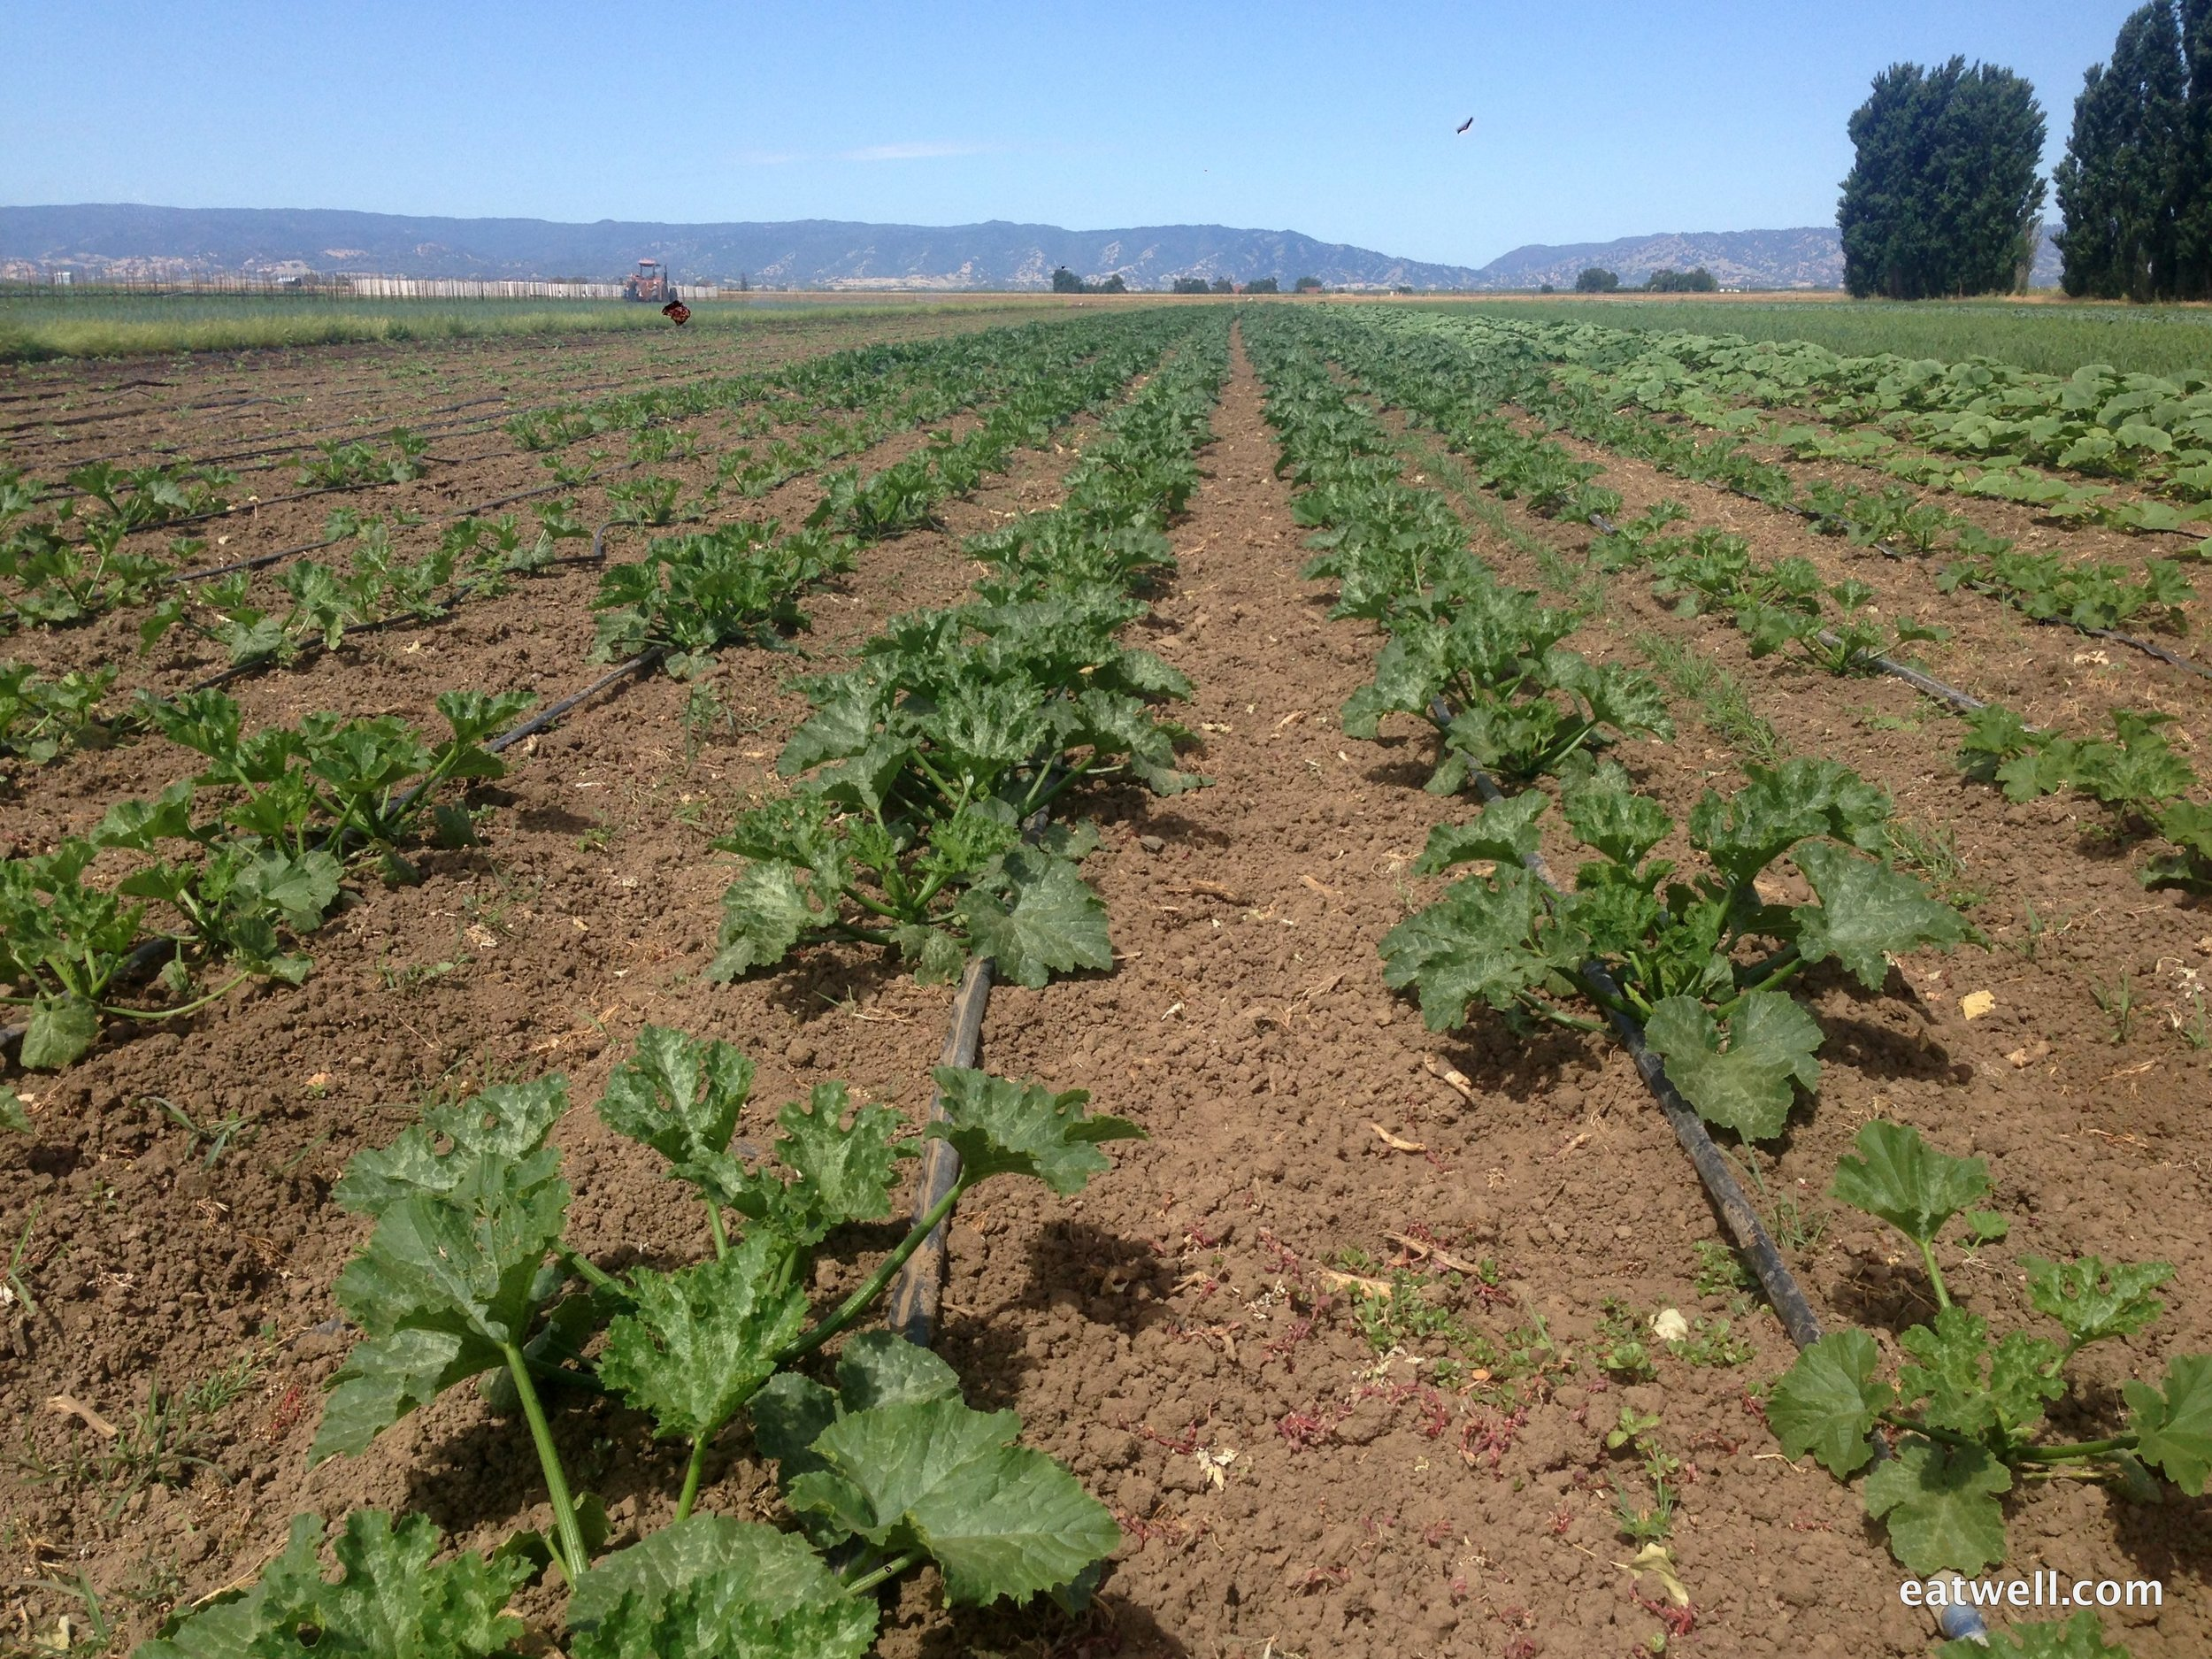 Drip lines along the rows of summer squash